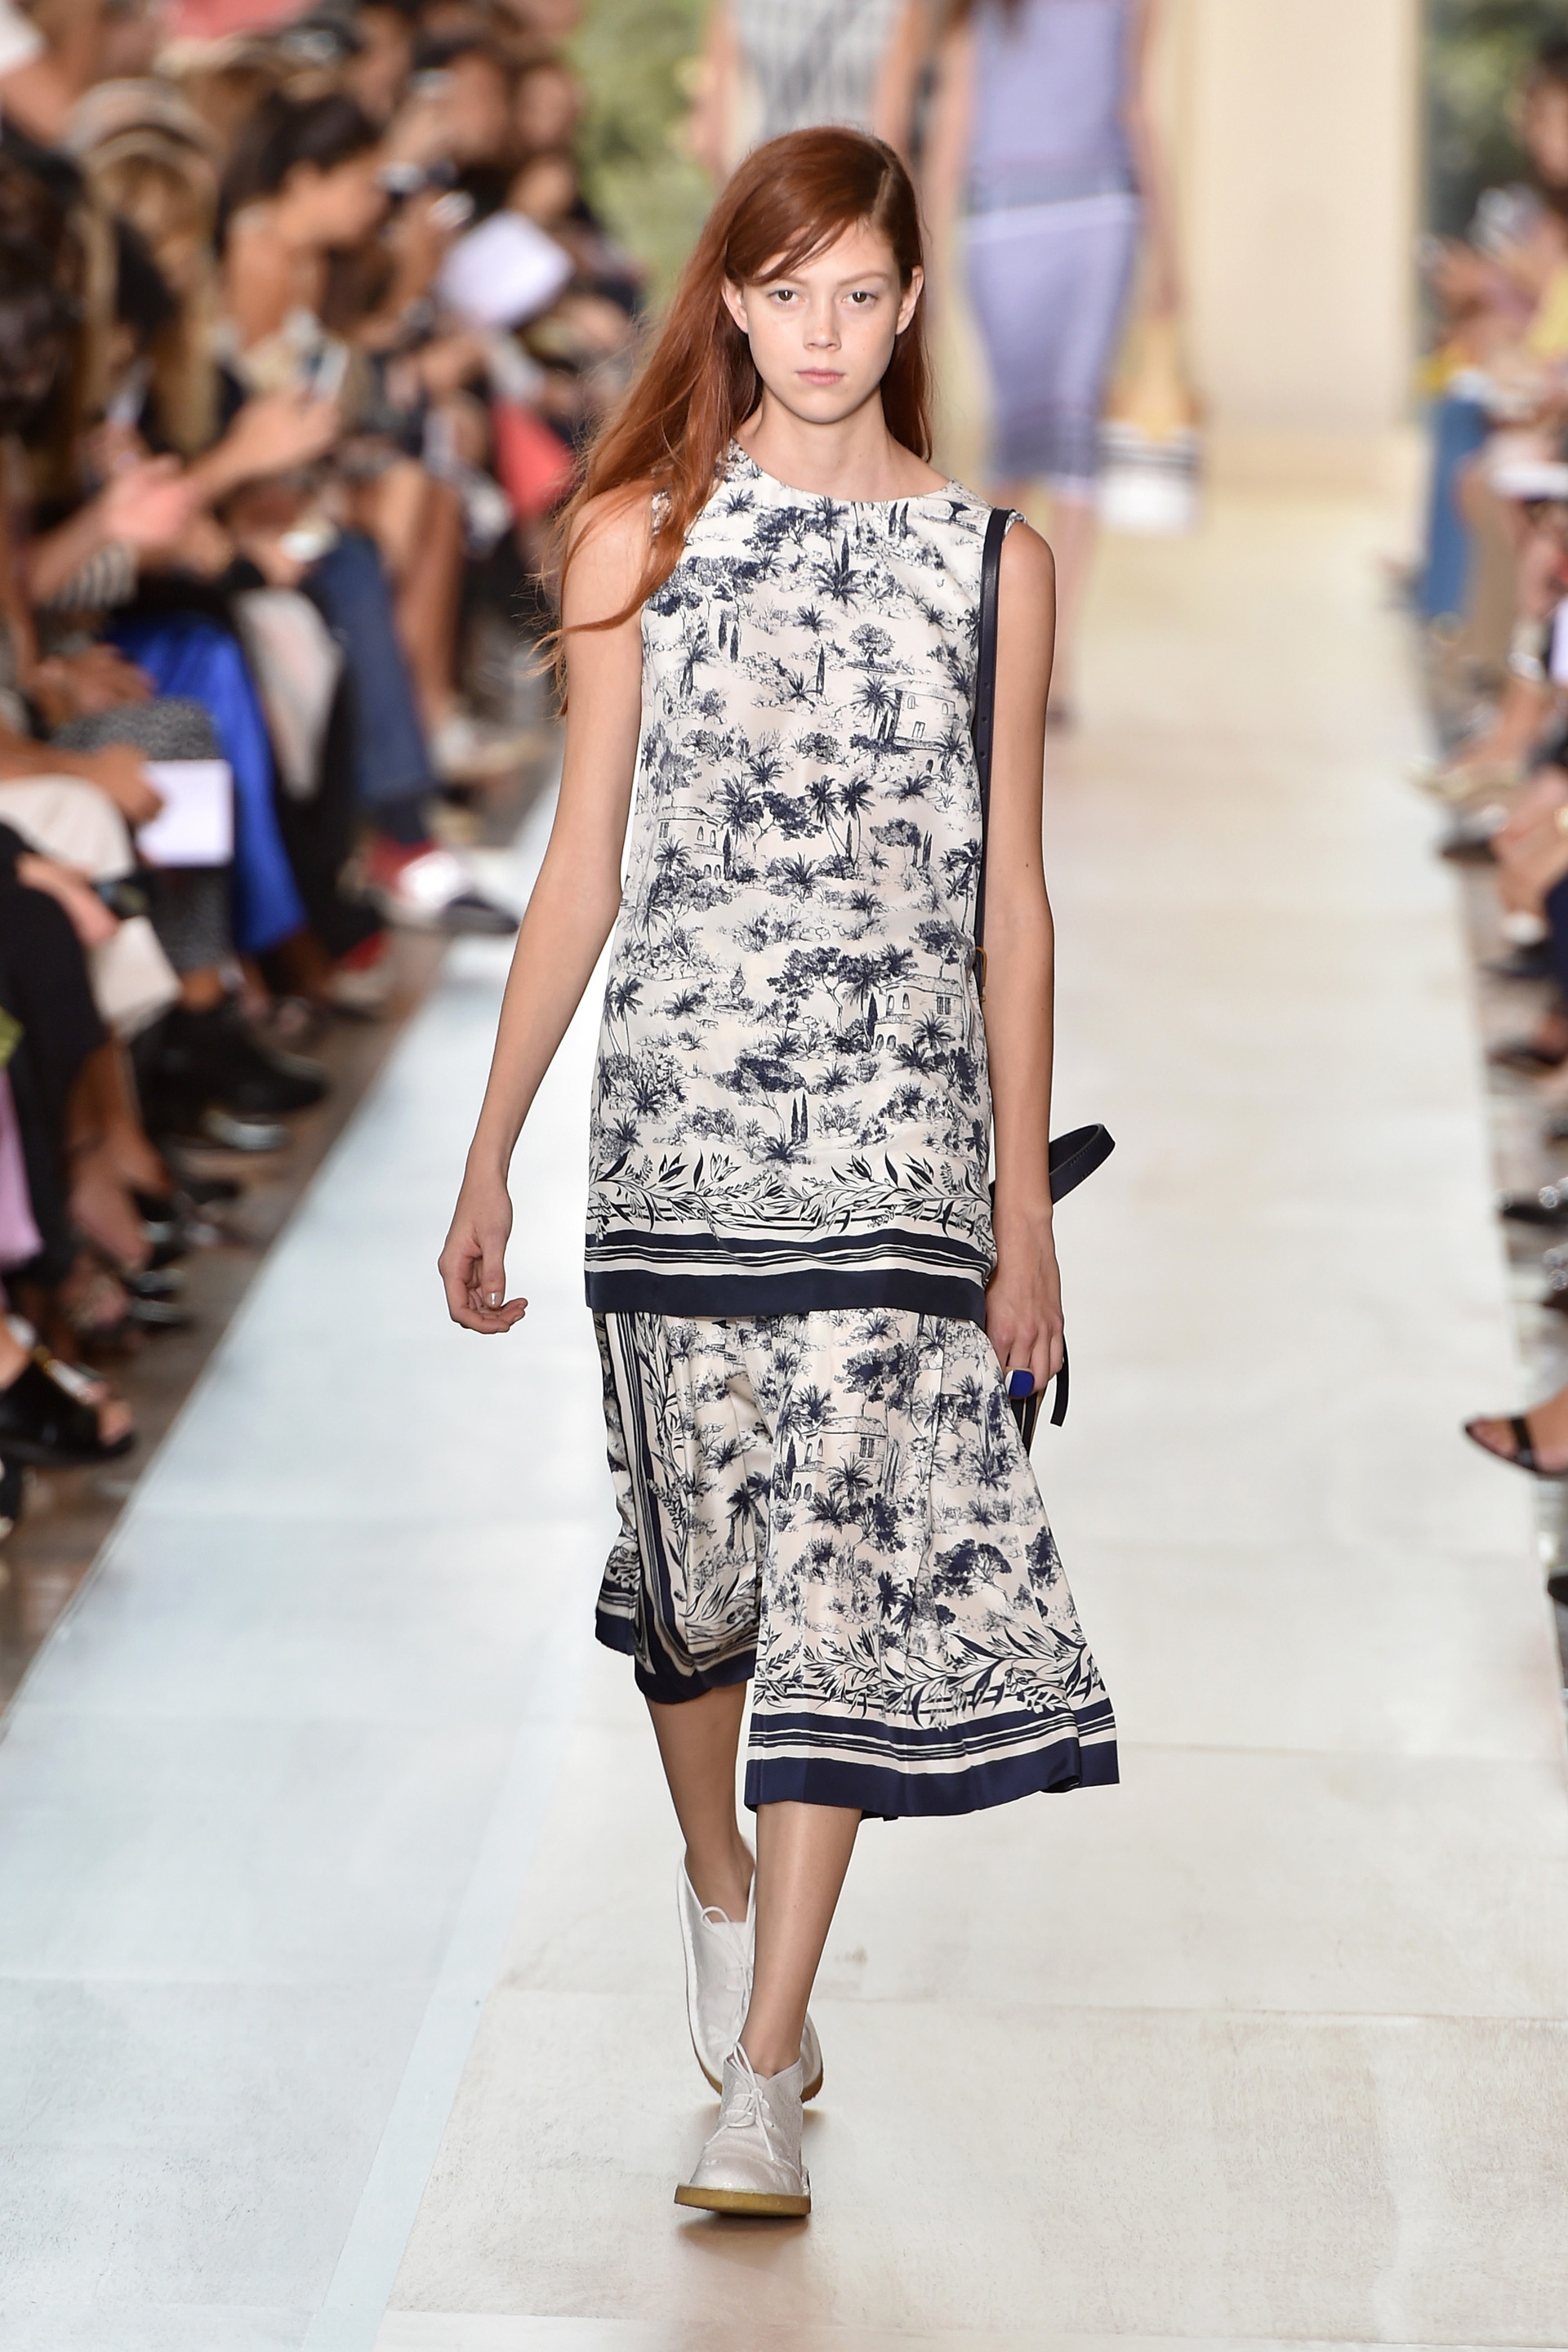 Tory Burch's spring 2015 collection 1